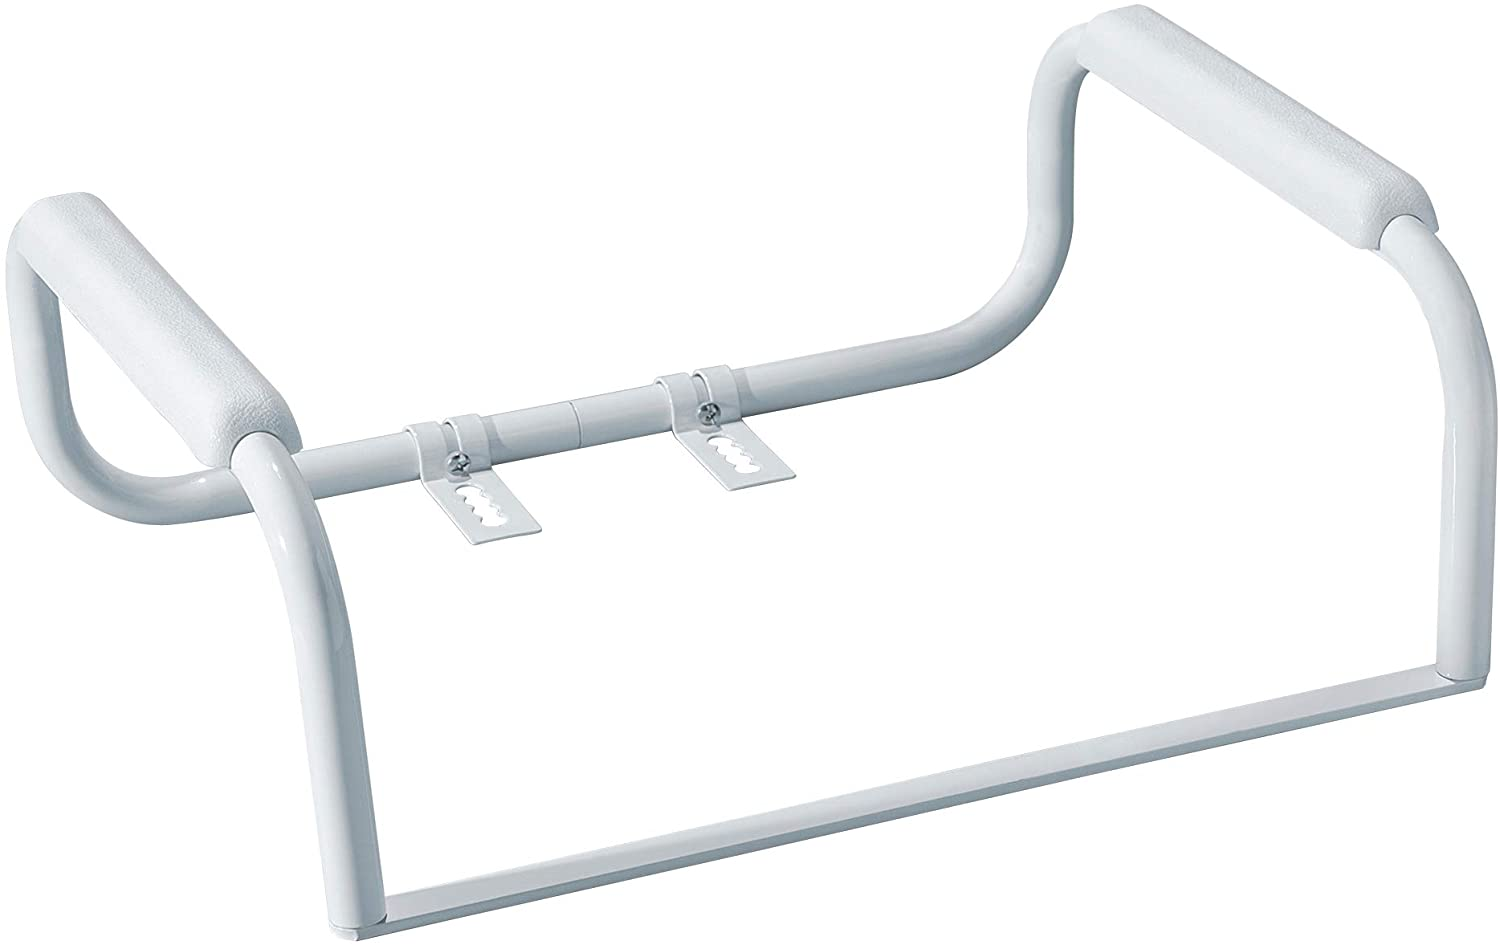 Moen DN7015 Home Care 23.25-Inch Toilet Safety Bar Rails, Glacier